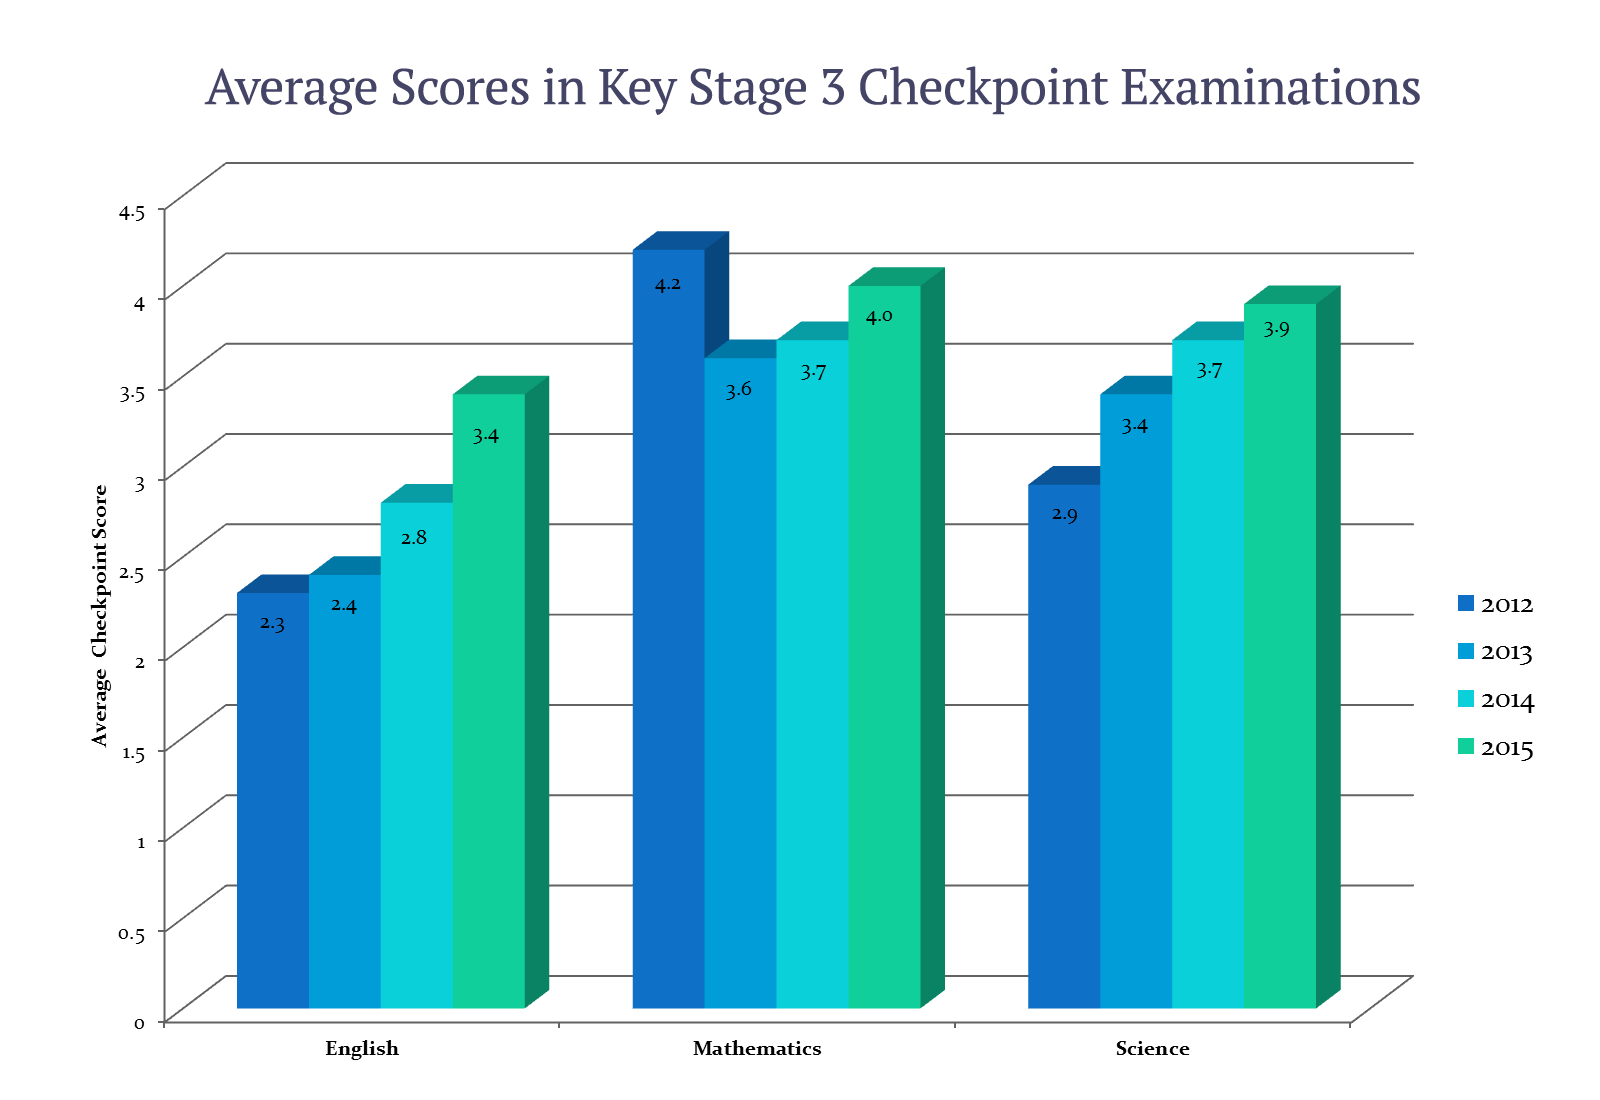 Average Scores Achieved in Key Stage 3 Checkpoint Examinations